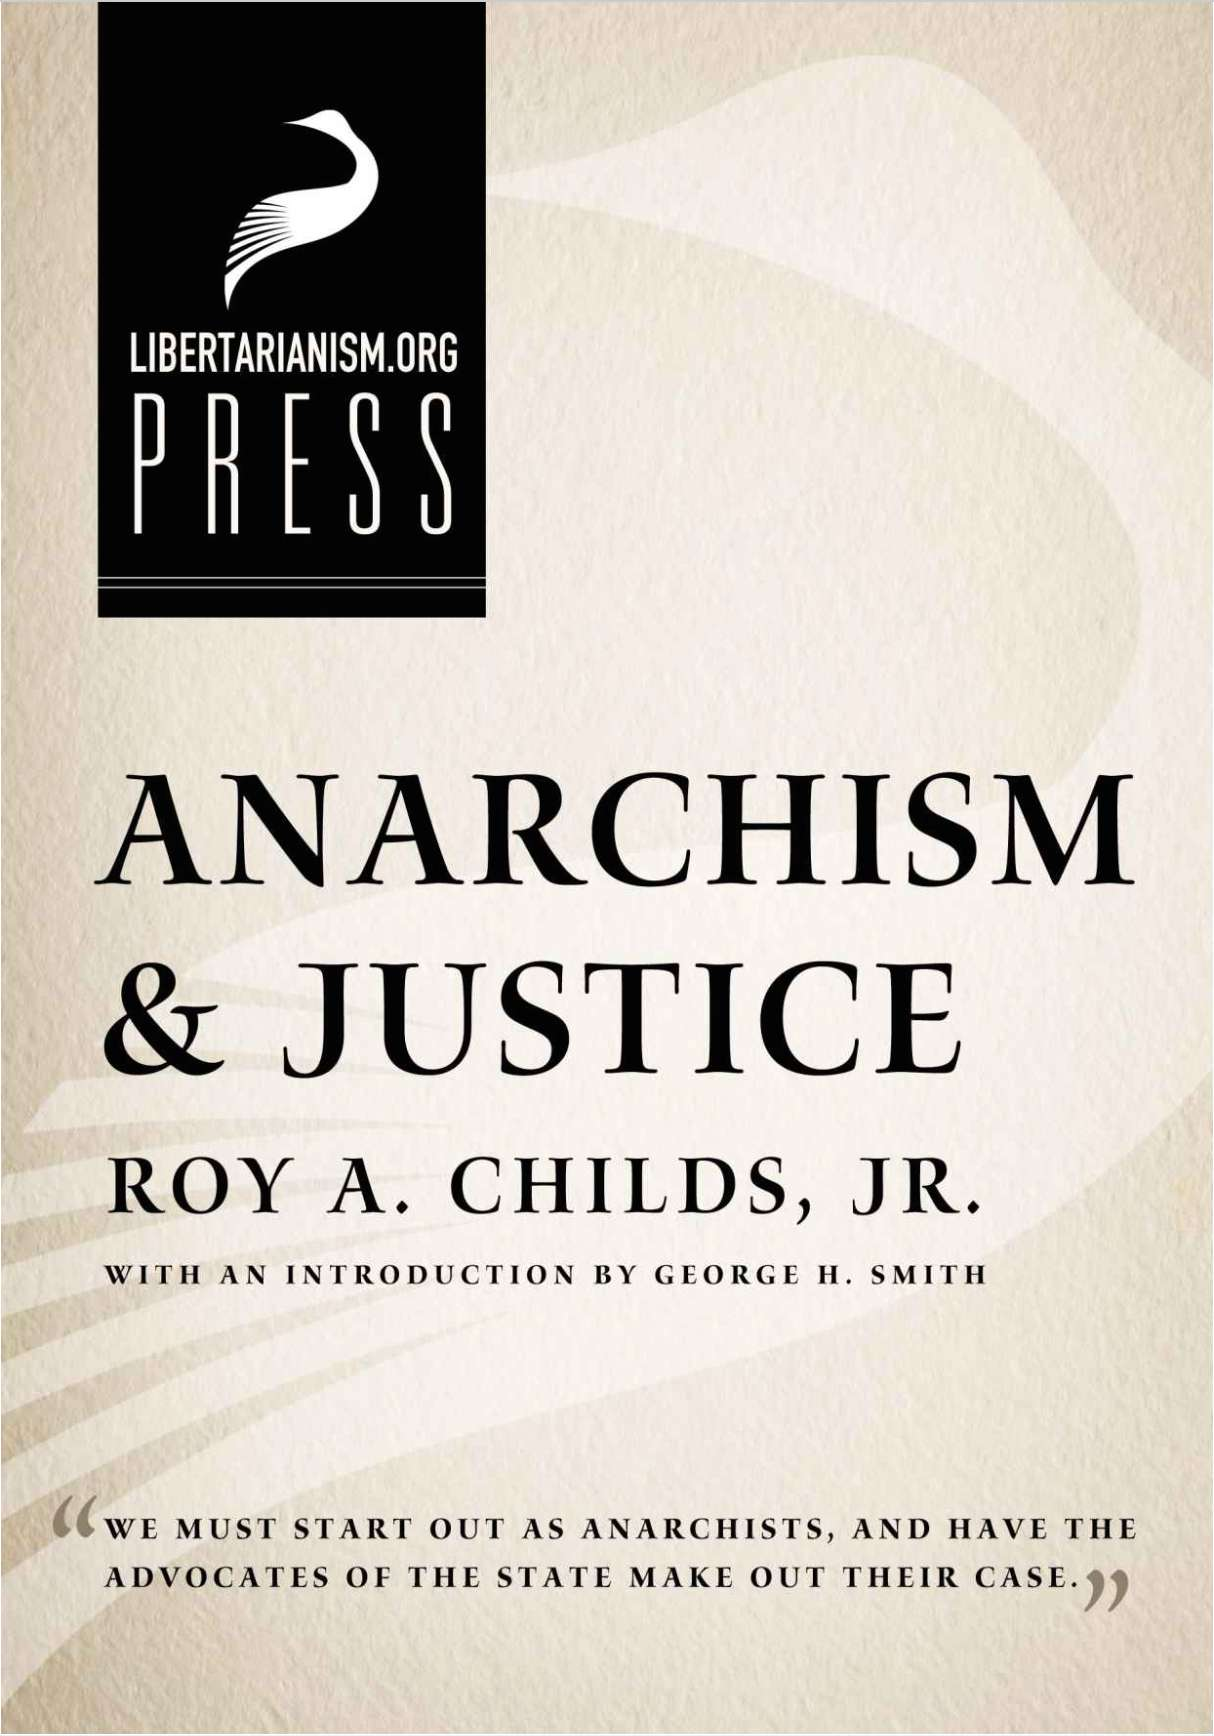 anarchism justice by roy a childs jr org